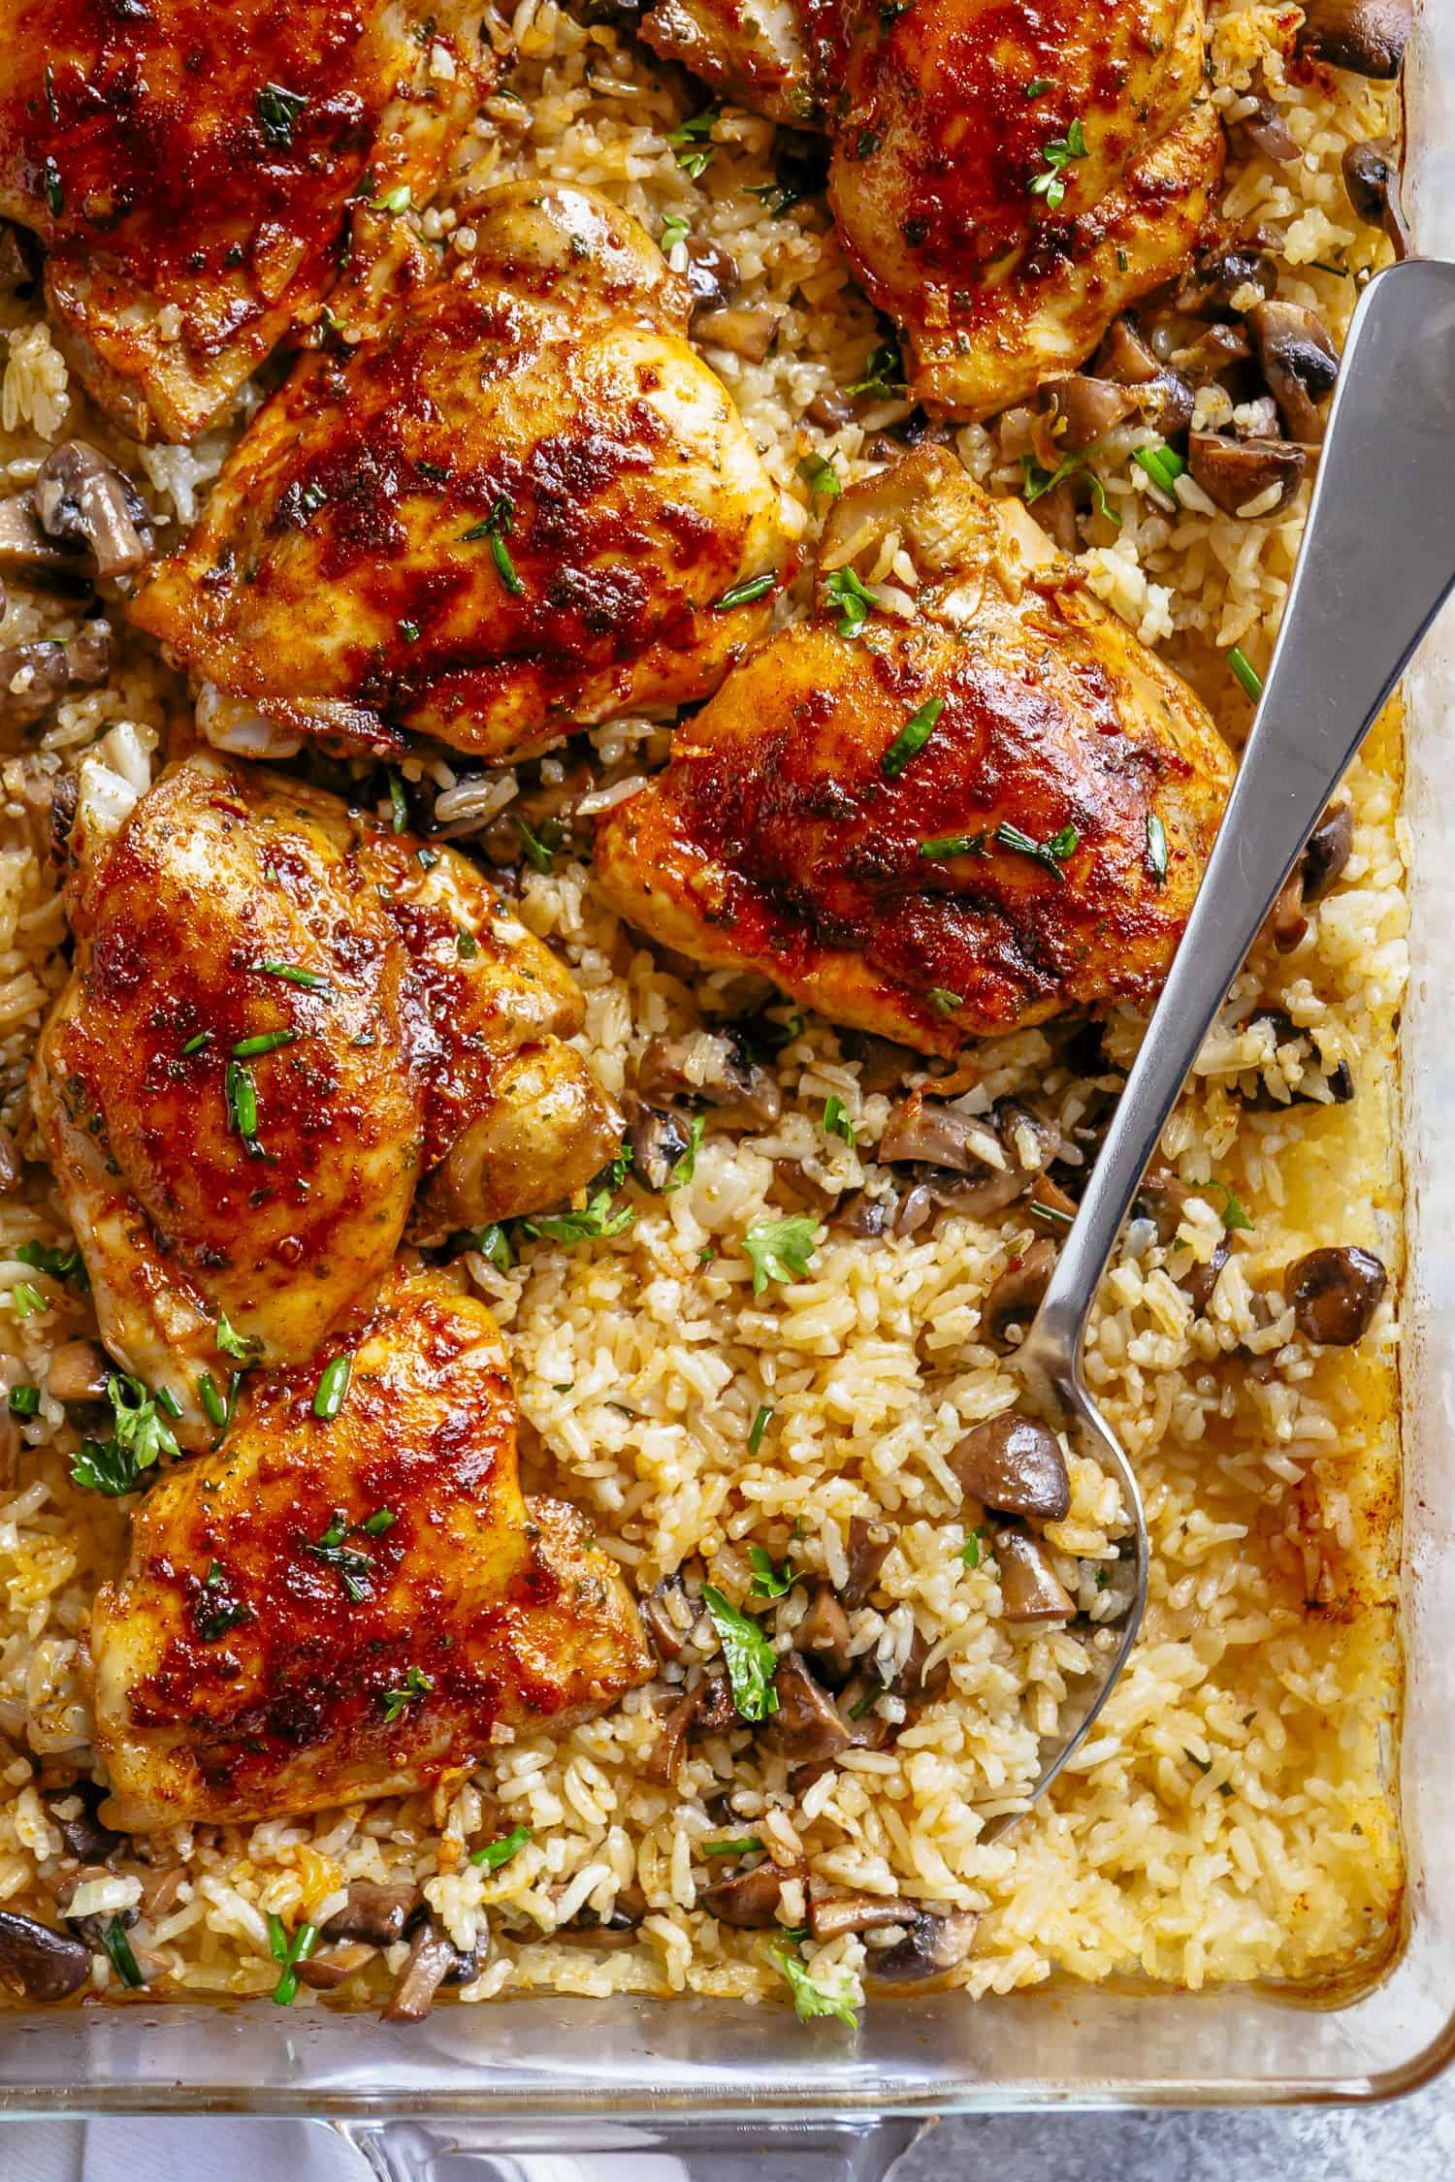 Oven Baked Chicken and Rice - Recipes Chicken Dishes